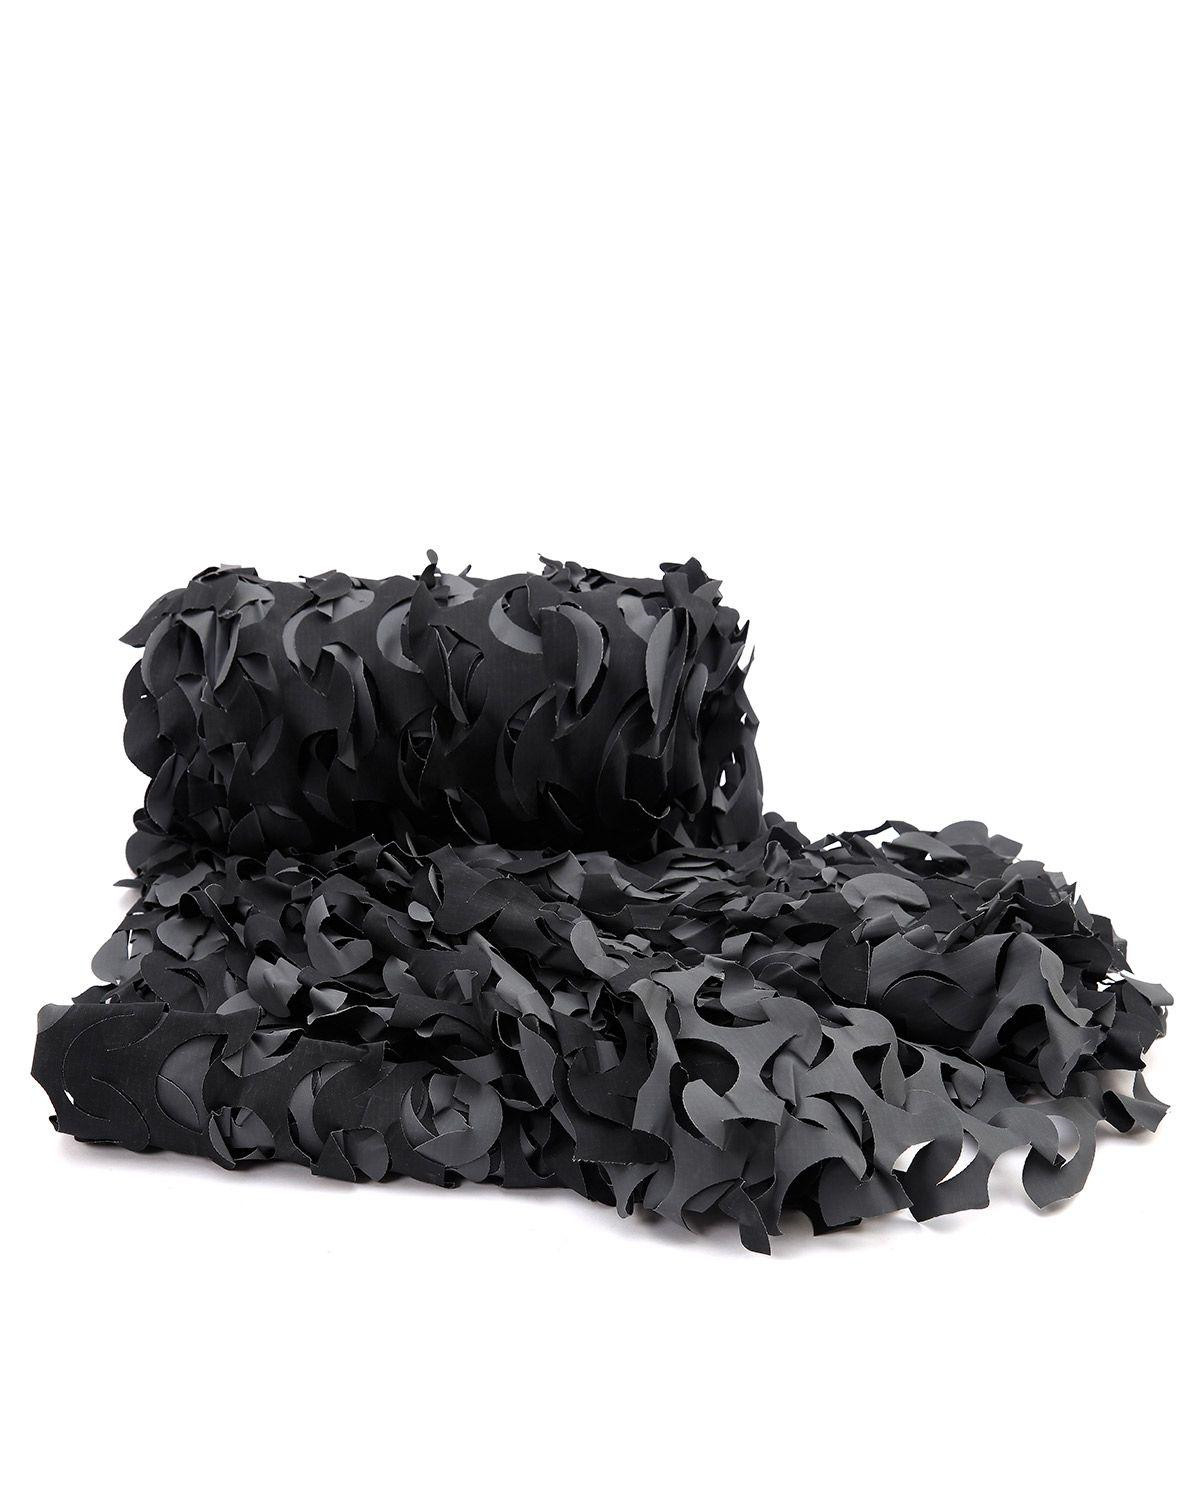 Image of   Camo Systems® Camouflagenet 3 x 2,4 meter (Black Camo, One Size)